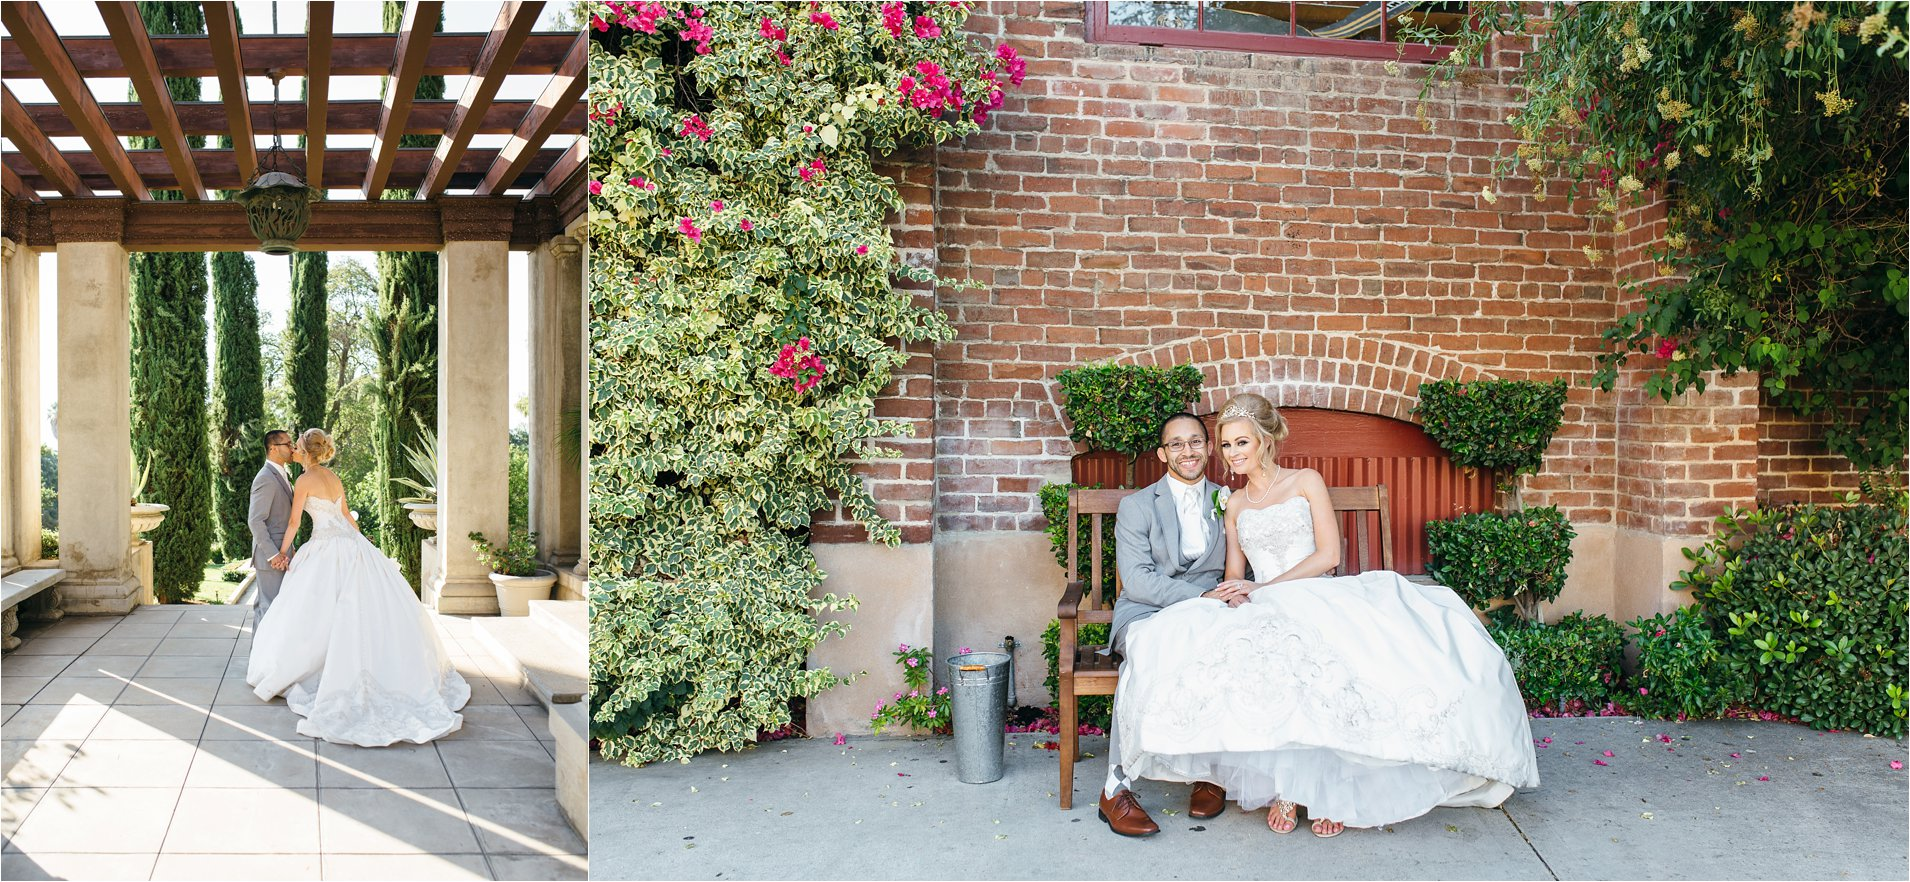 Bride and Groom Photos at the Mitten Building